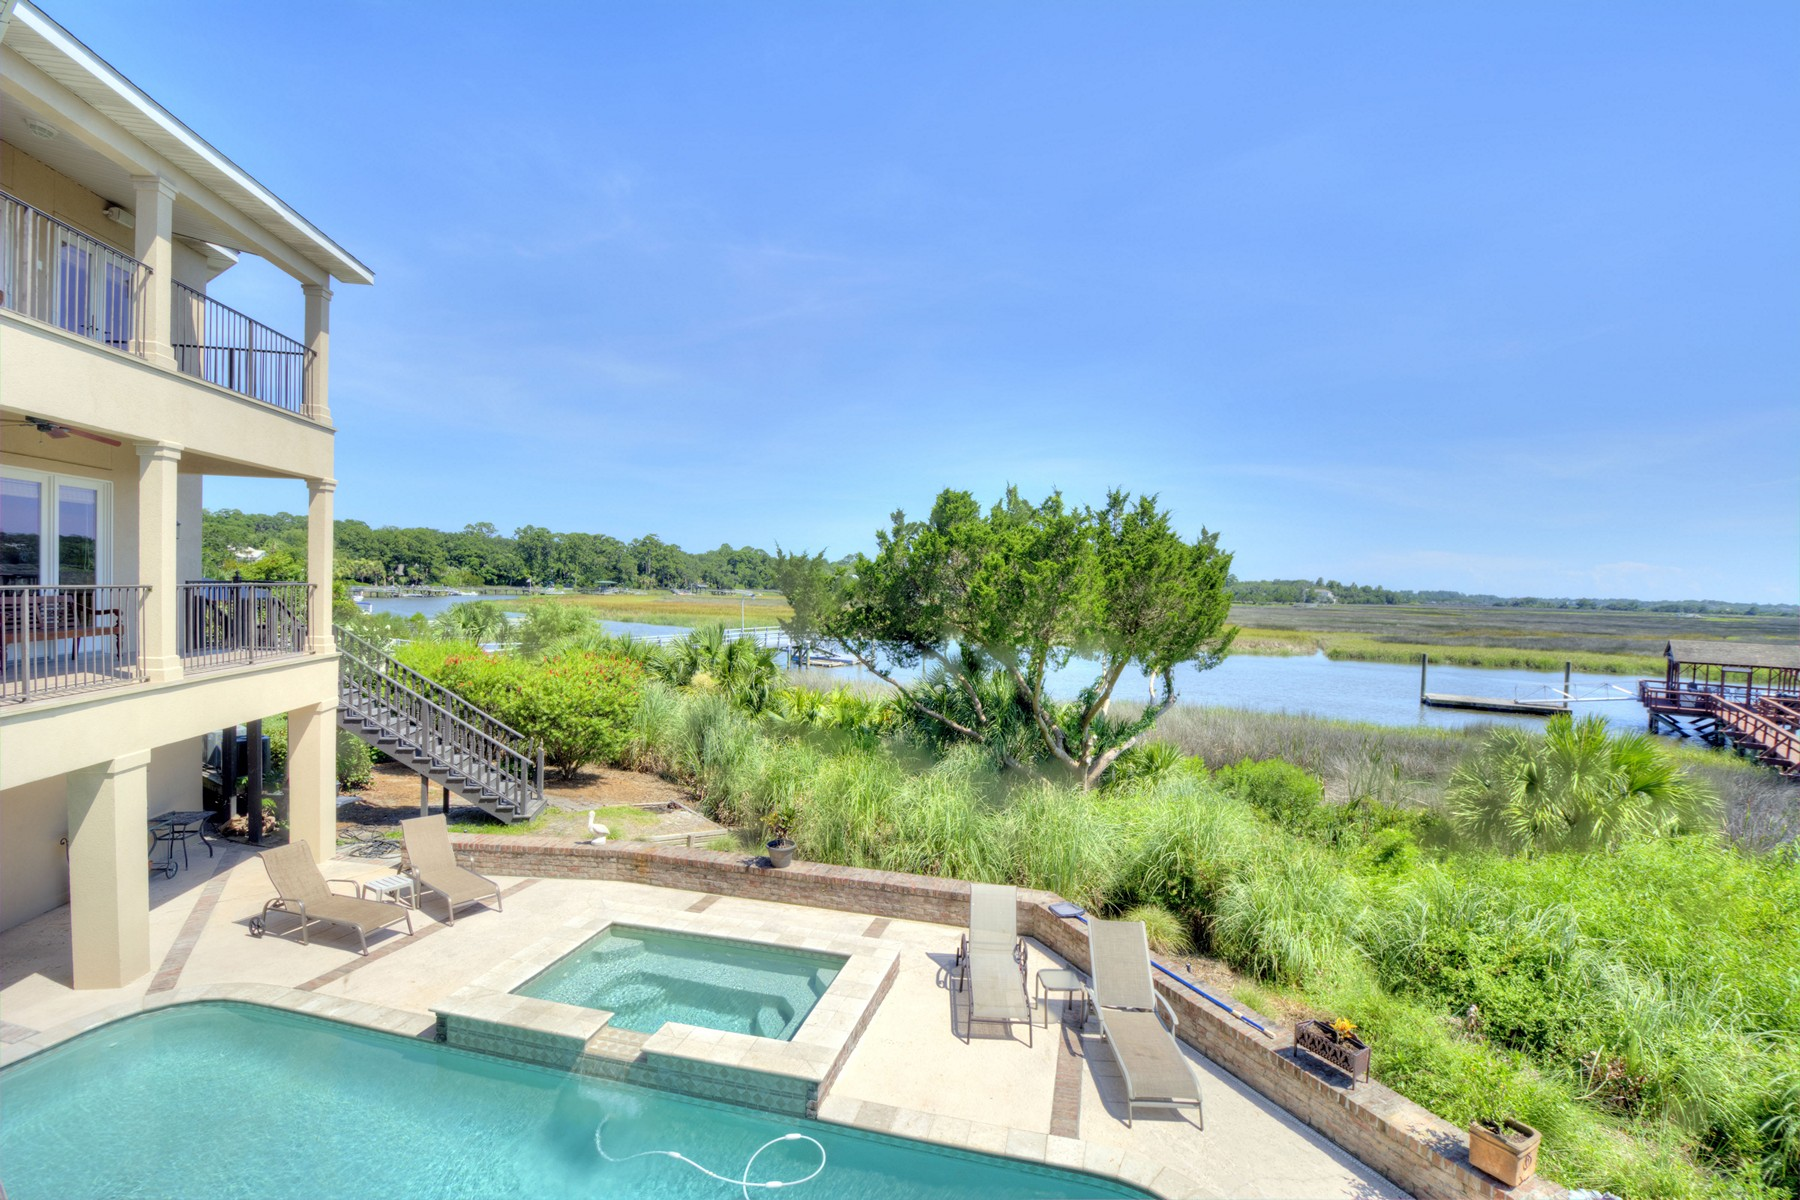 Vivienda unifamiliar por un Venta en 11 Dunbar Creek Pt 11 Dunbar Creek Point St. Simons Island, Georgia 31522 Estados Unidos